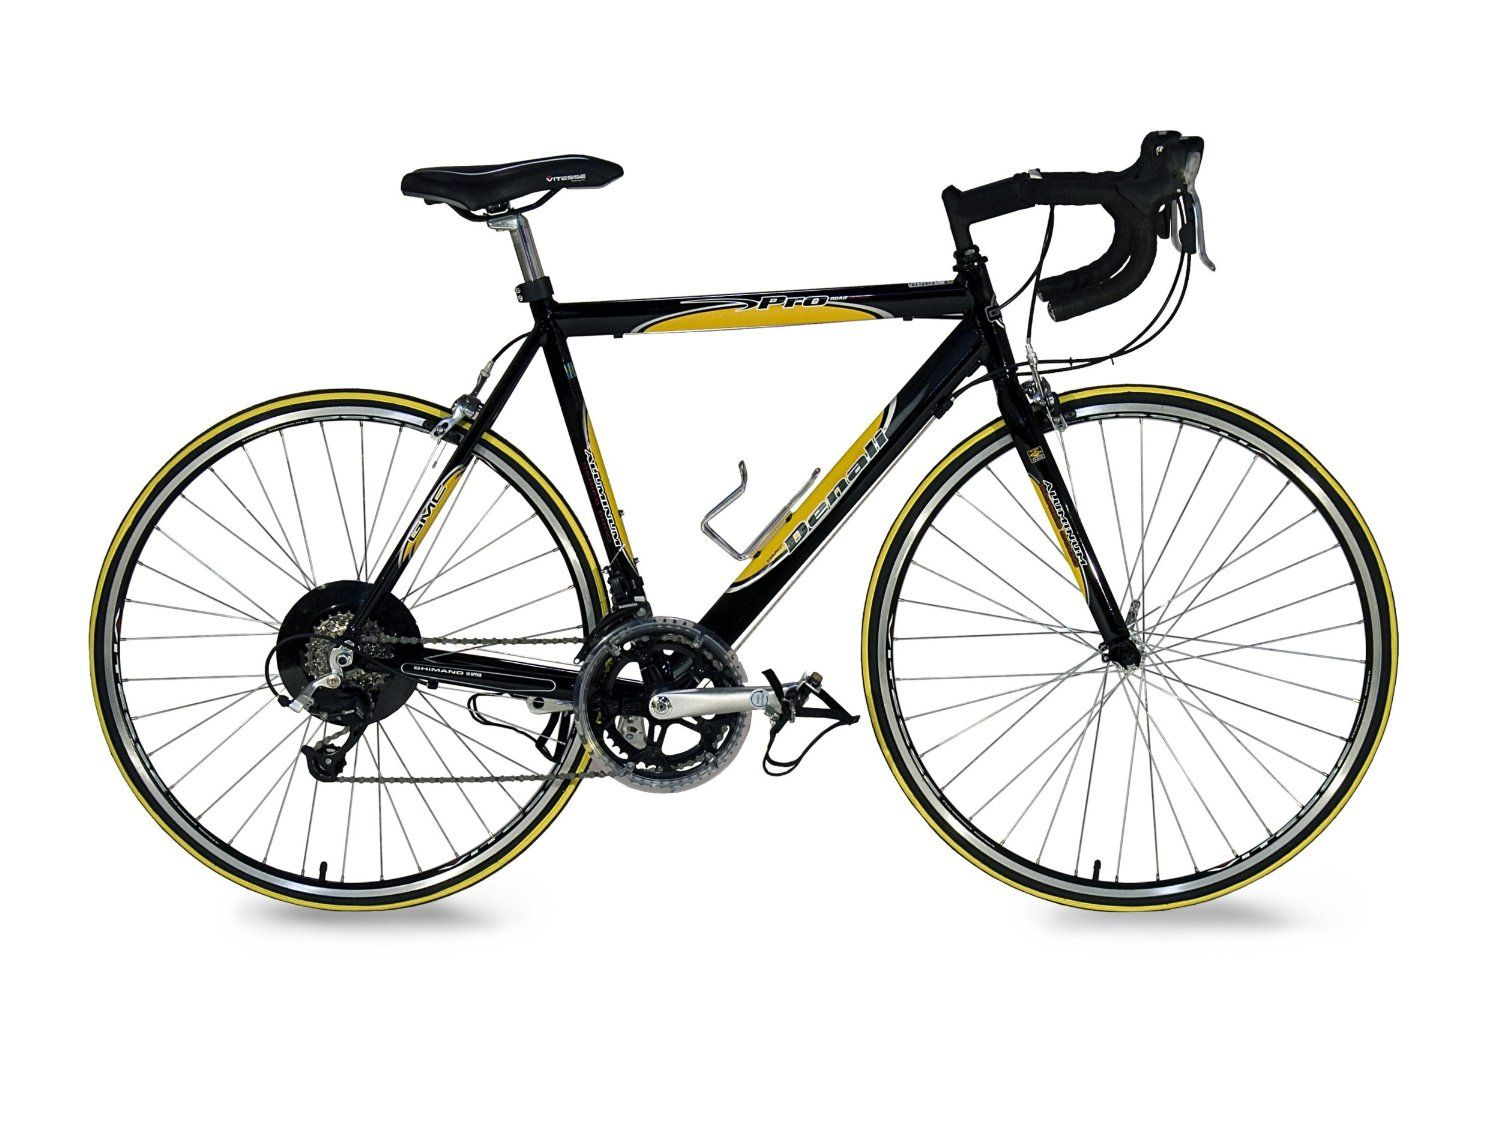 Gmc Denali Pro Road Bike 700c 22 5 Inch Frame 300 Gmc Denali Road Bike Best Road Bike